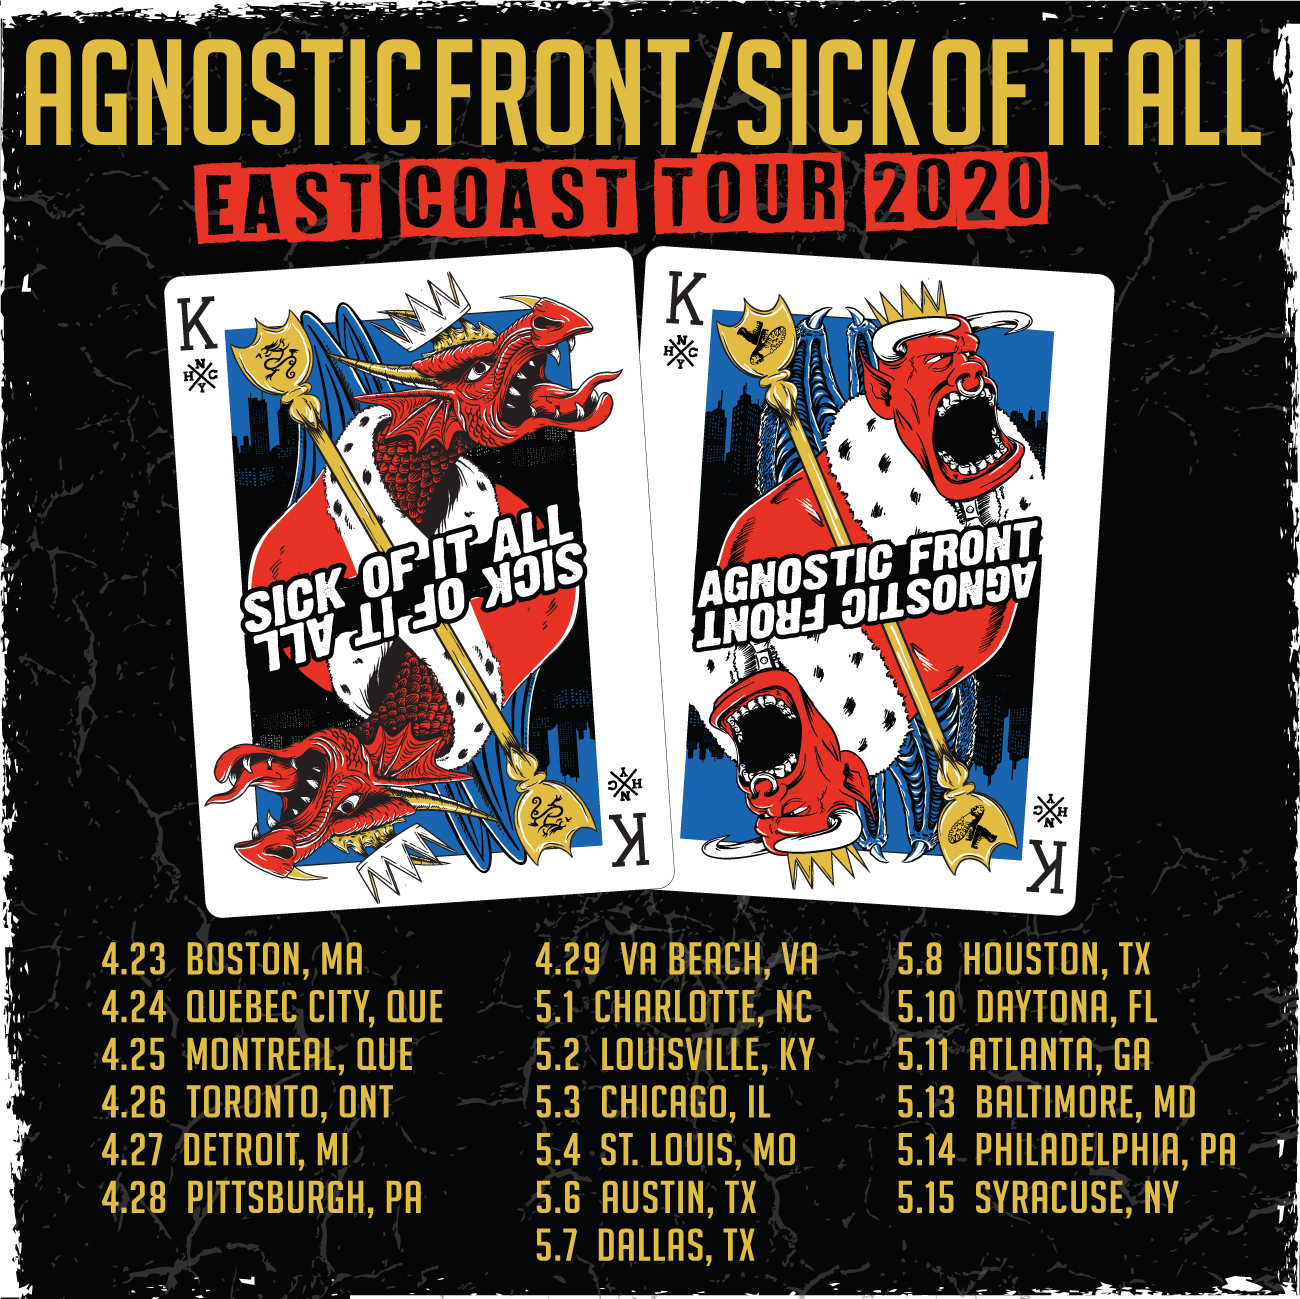 2020 East Coast co-headline tour with Agnostic Front